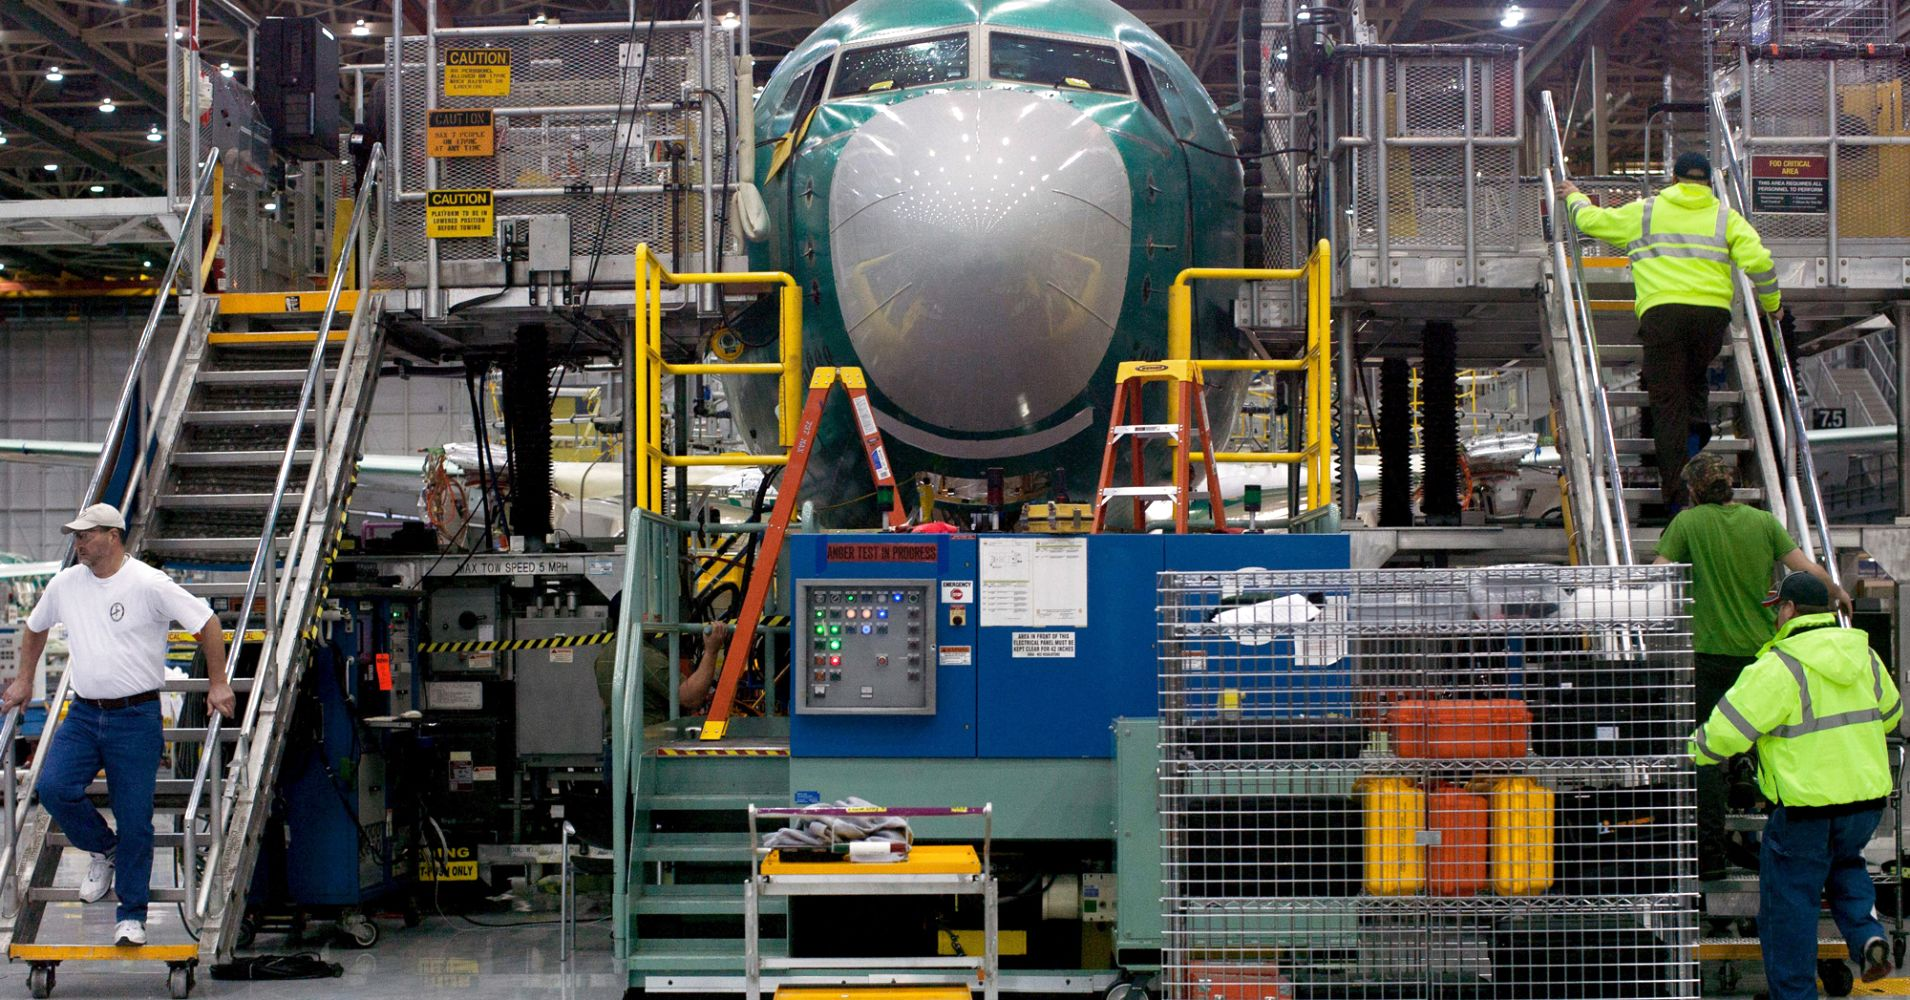 Boeing employees going up and down stairs entering and exiting the Boeing 737 MAX during a media tour at the Boeing plant in Renton, Washington.